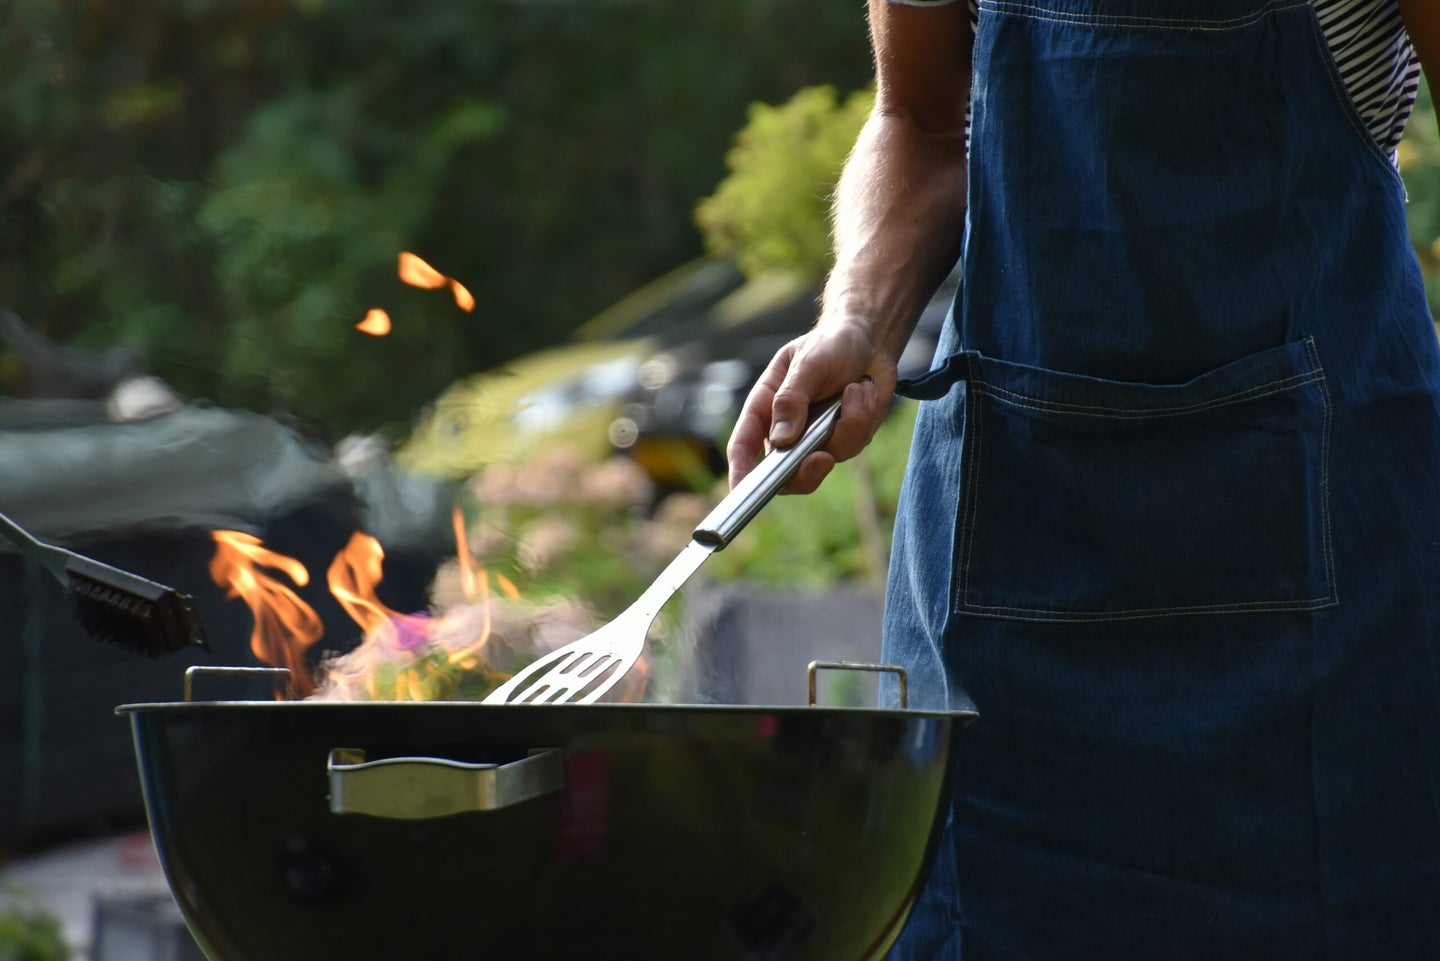 man grilling on an open barbecue